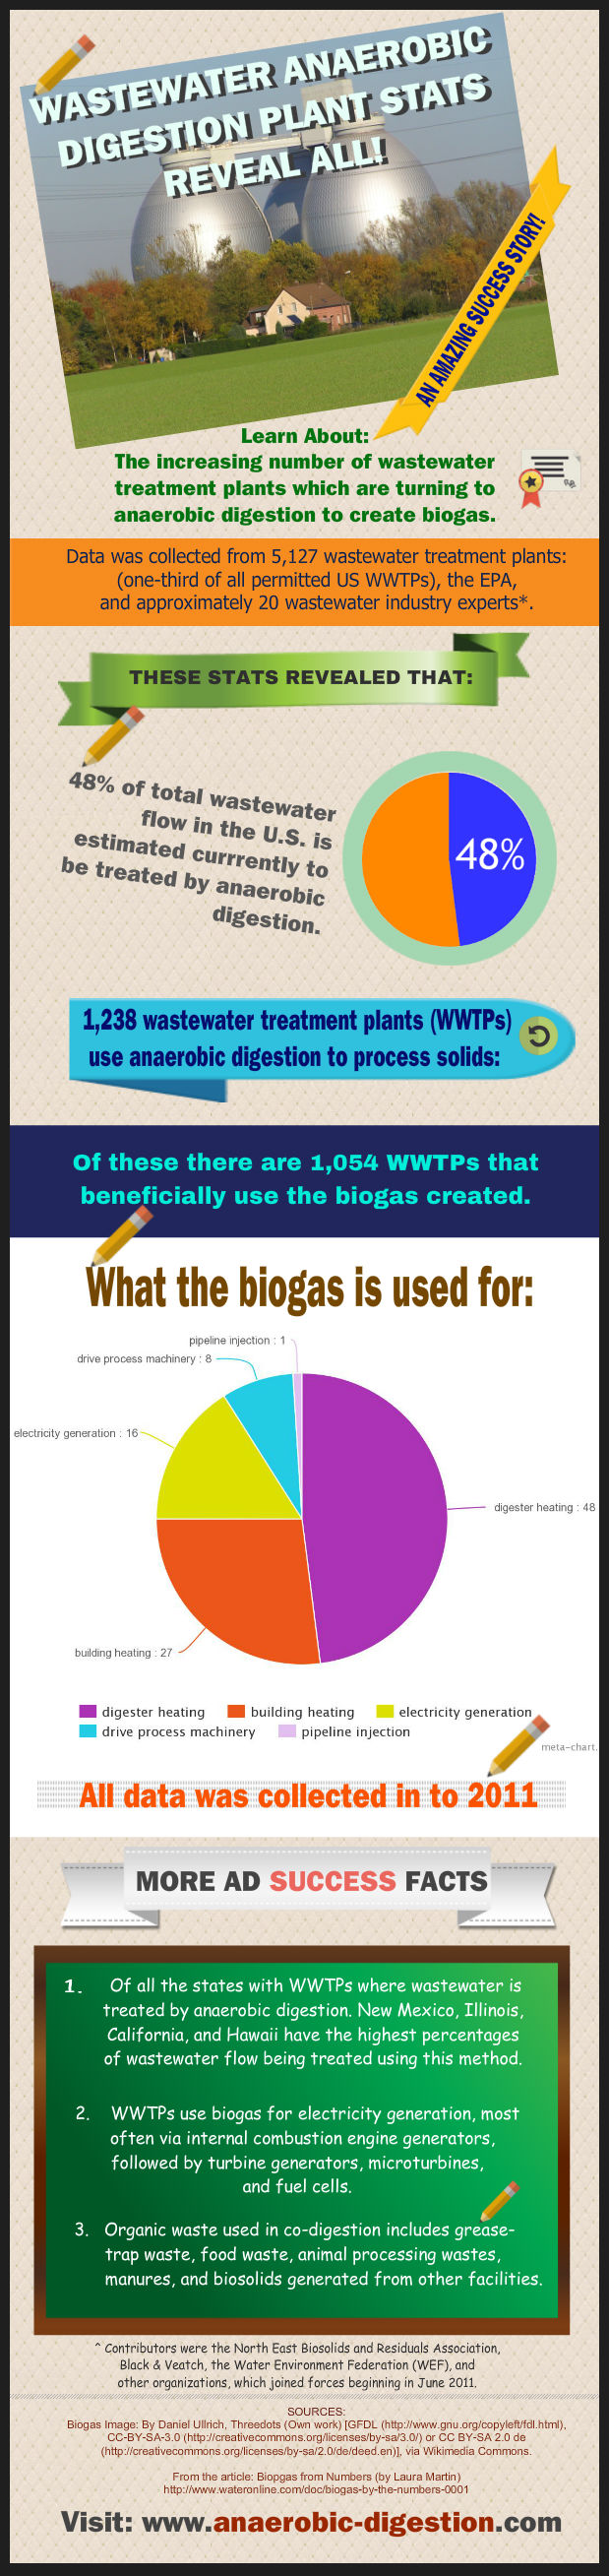 Wastewater Anaerobic Digestion Plant Stats Reveal All